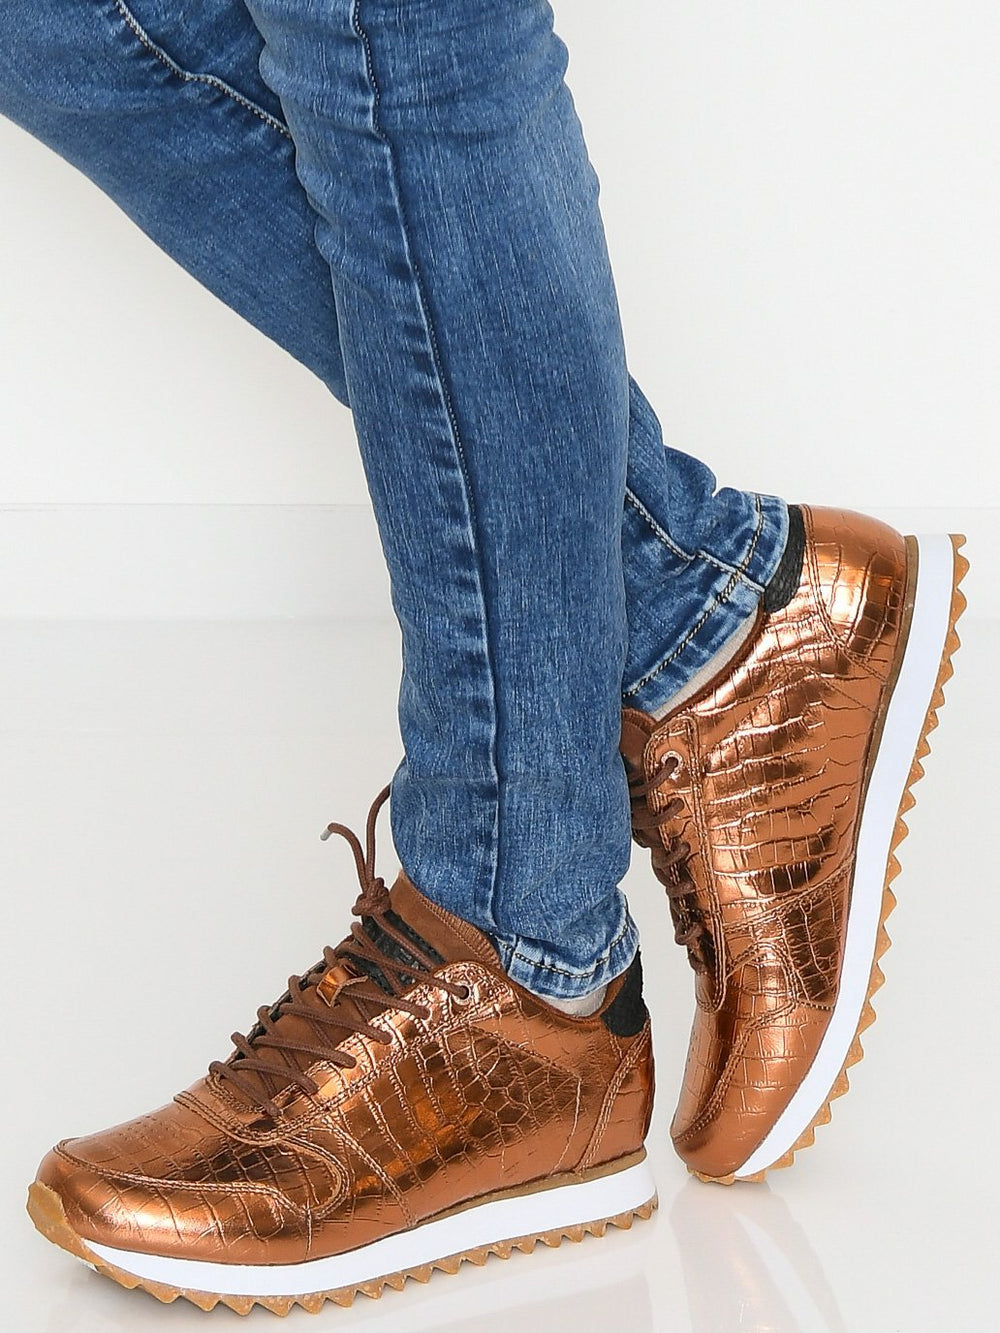 Woden Ydun croco shiny sneakers burnished copper - Online-Mode